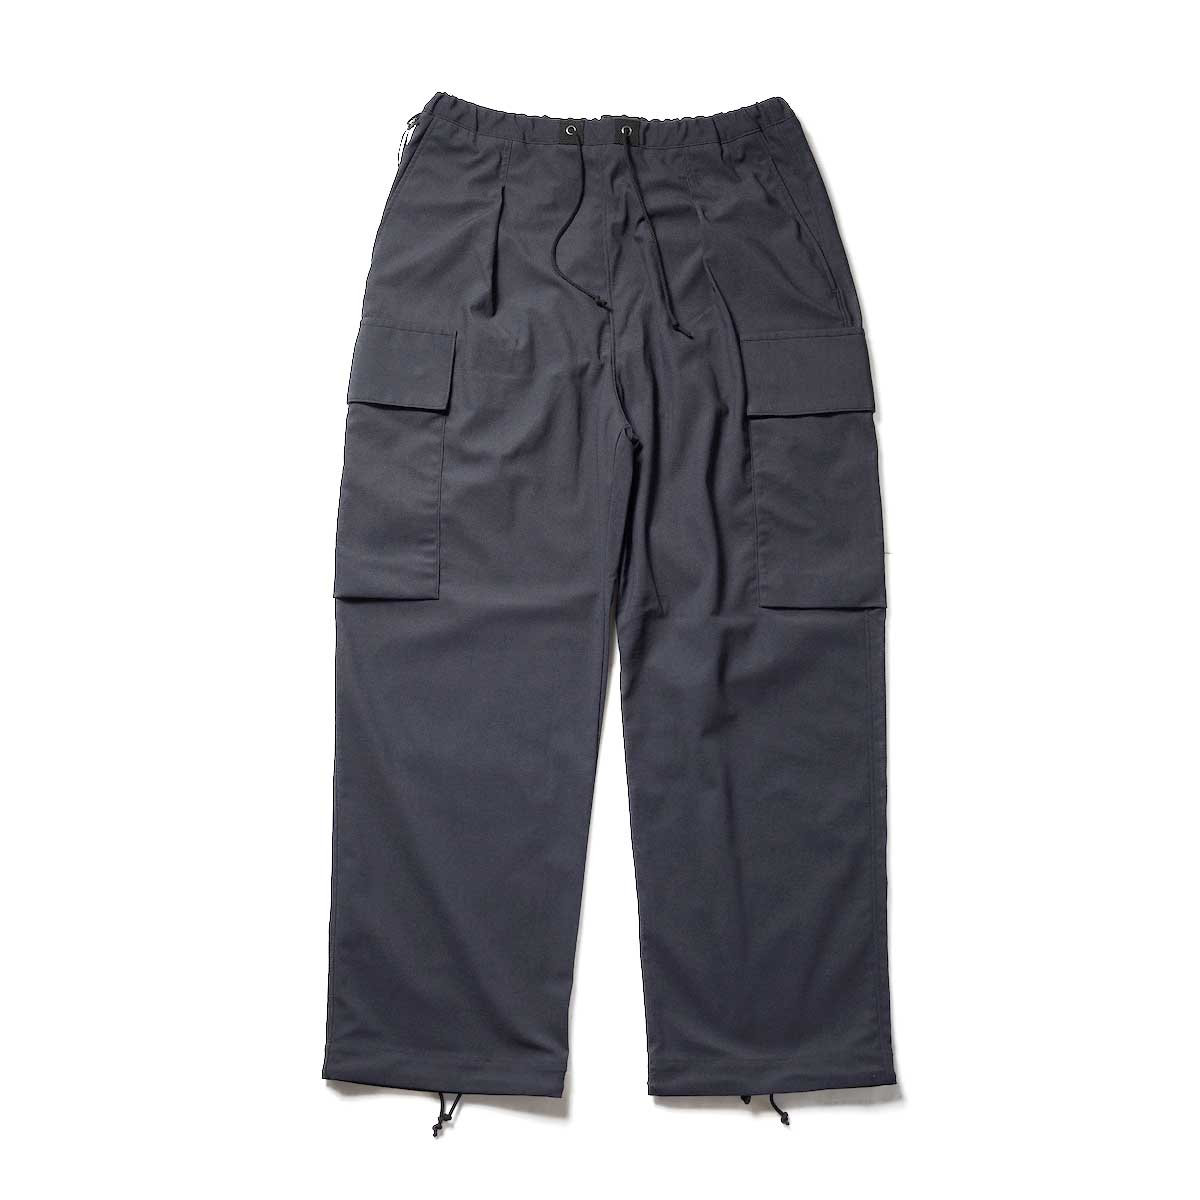 CURLY / PROSPECT CARGO TROUSERS (Black)